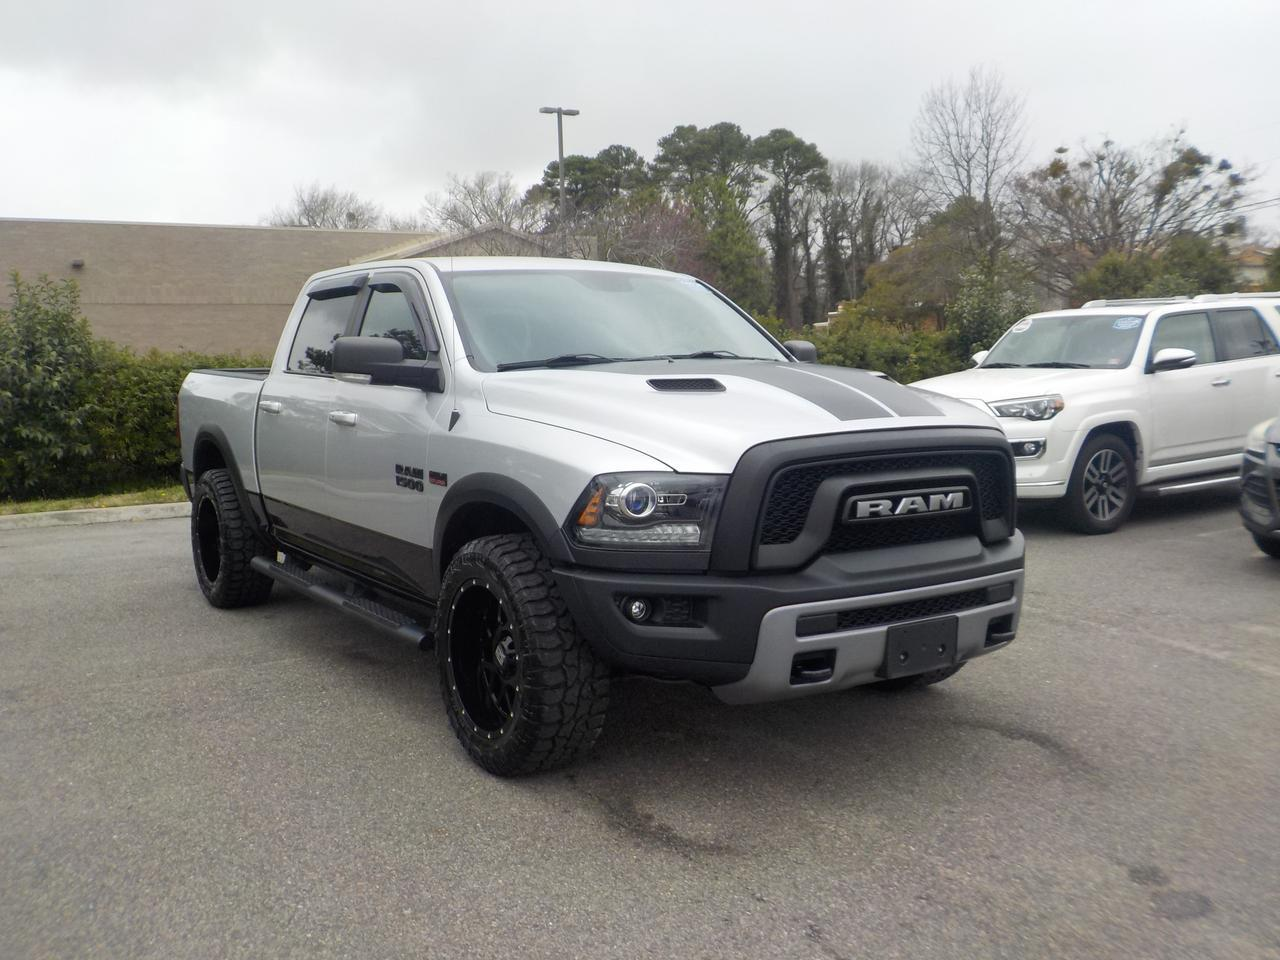 2016 RAM 1500 CREW CAB REBEL 4X4, HEMI, LEATHER & CLOTH, PREMIUM SOUND, BEDLINER, TOW PKG, ONLY 37K MILES! Virginia Beach VA